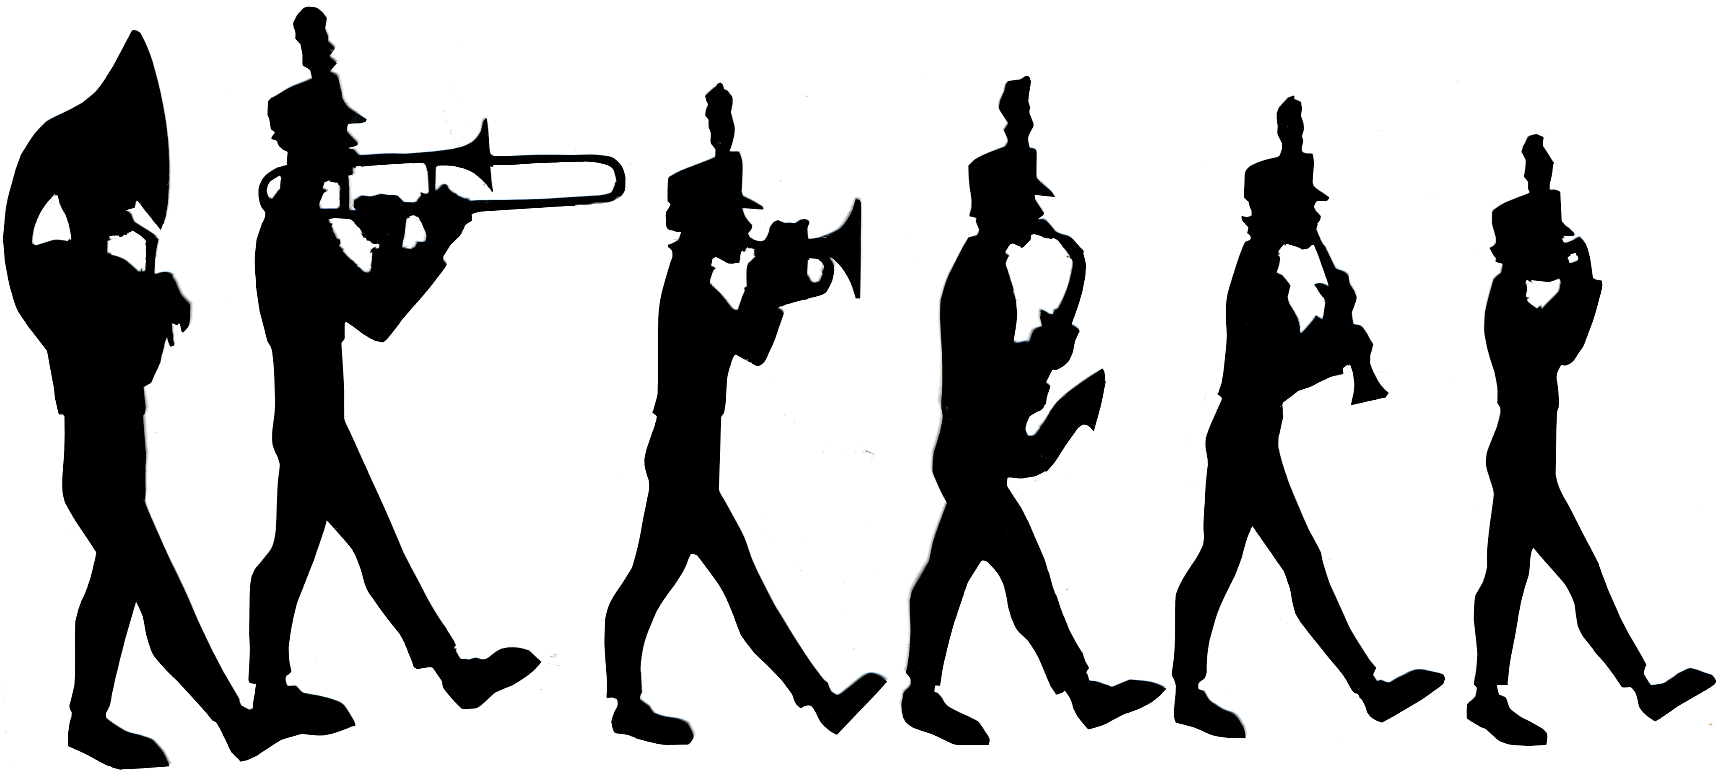 marching band silhouette clip art at getdrawings com free for rh getdrawings com band clipart logos maker band clip art pictures